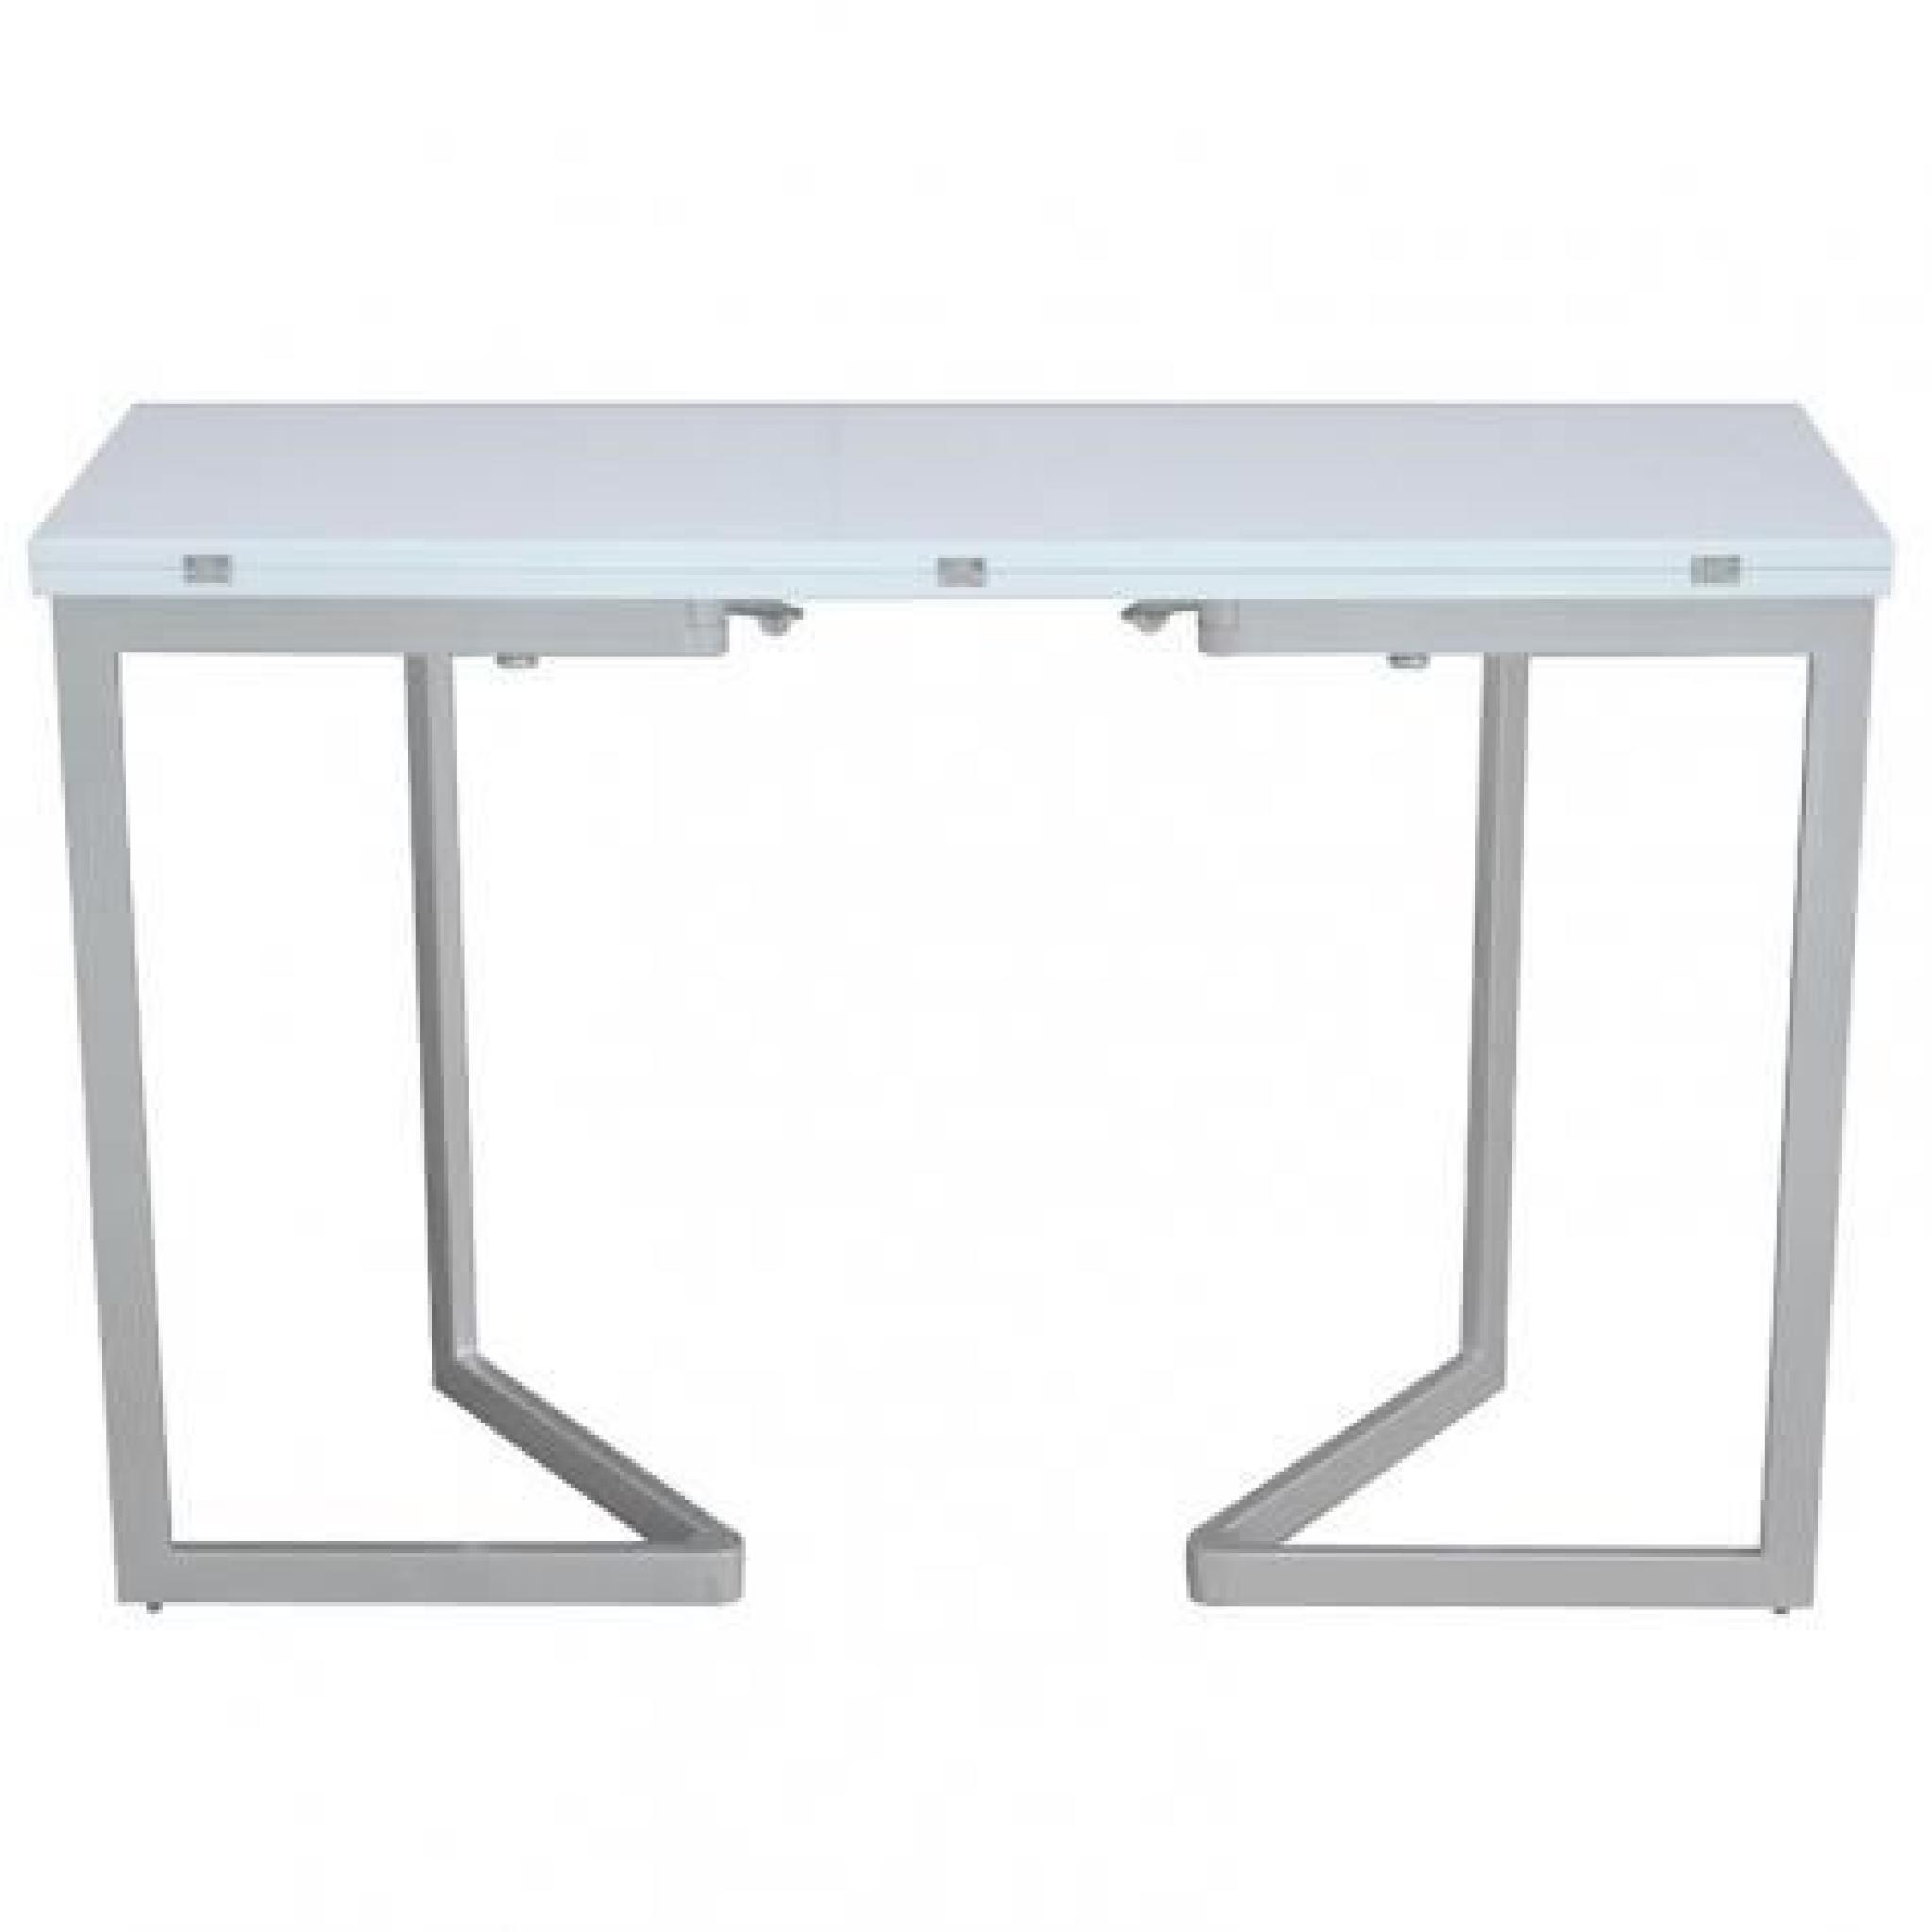 Table console extensible blanche laqu e talia achat for Table a manger blanche extensible